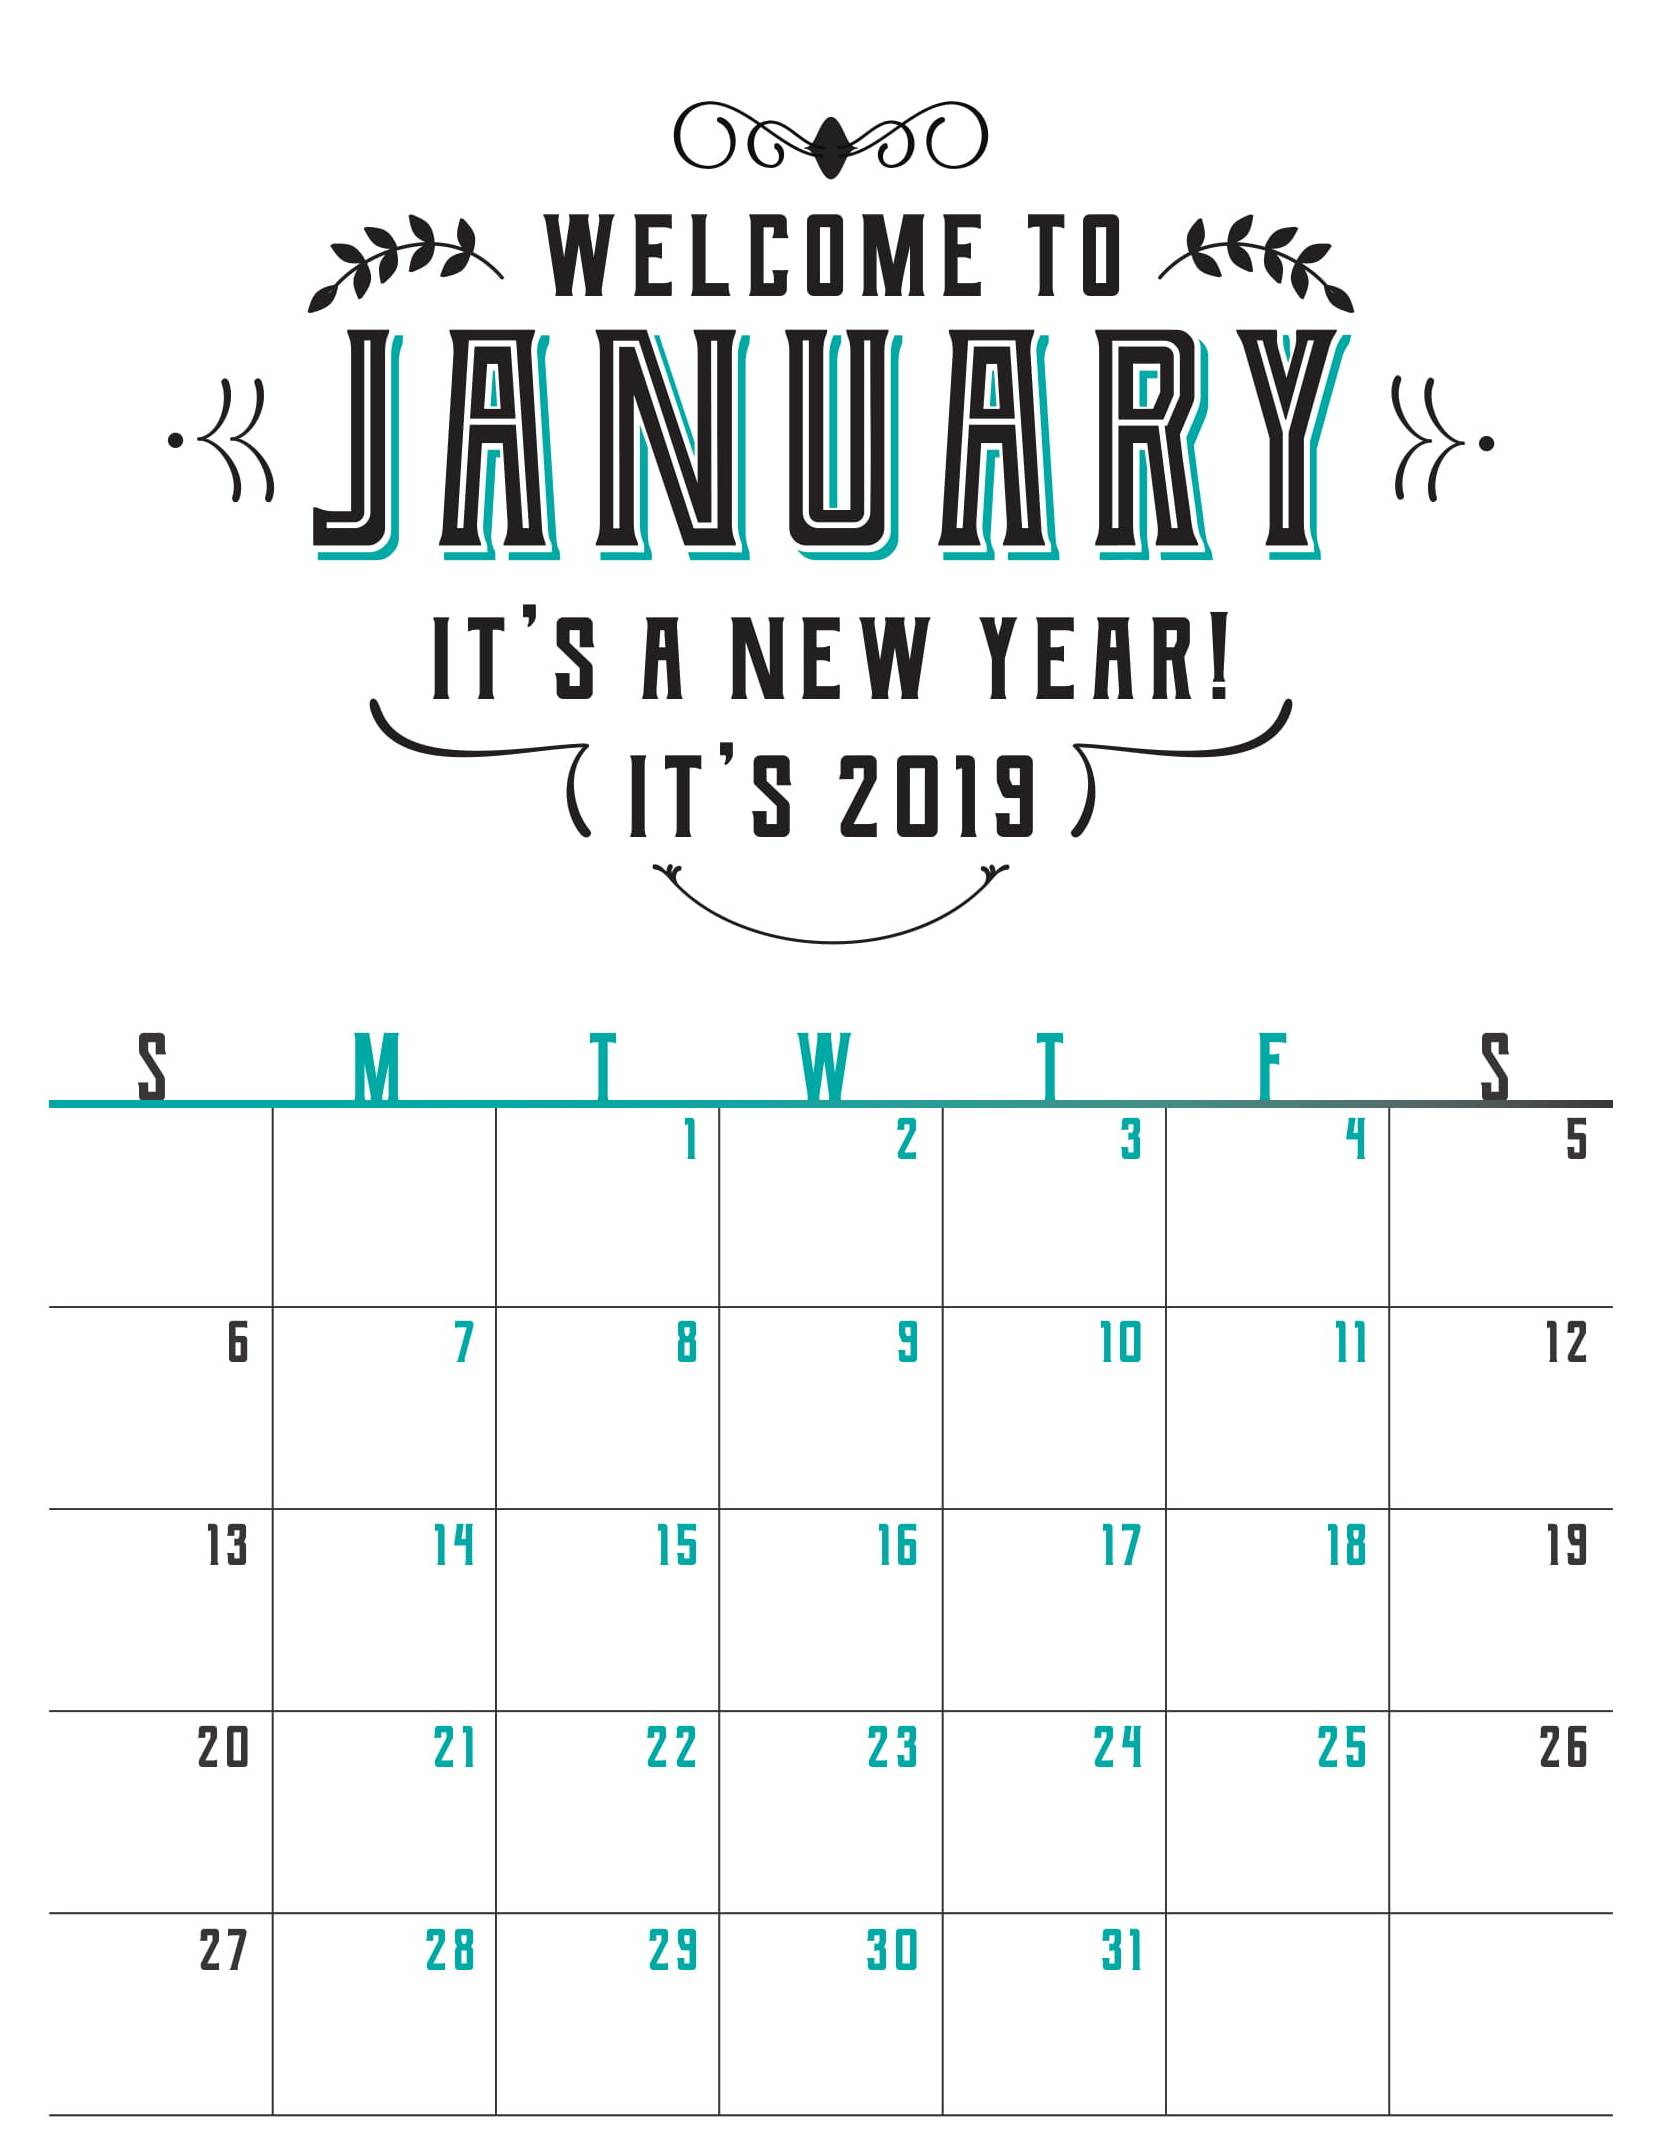 Blank January 2020 Calendar Printable Sheet Word - Set Your